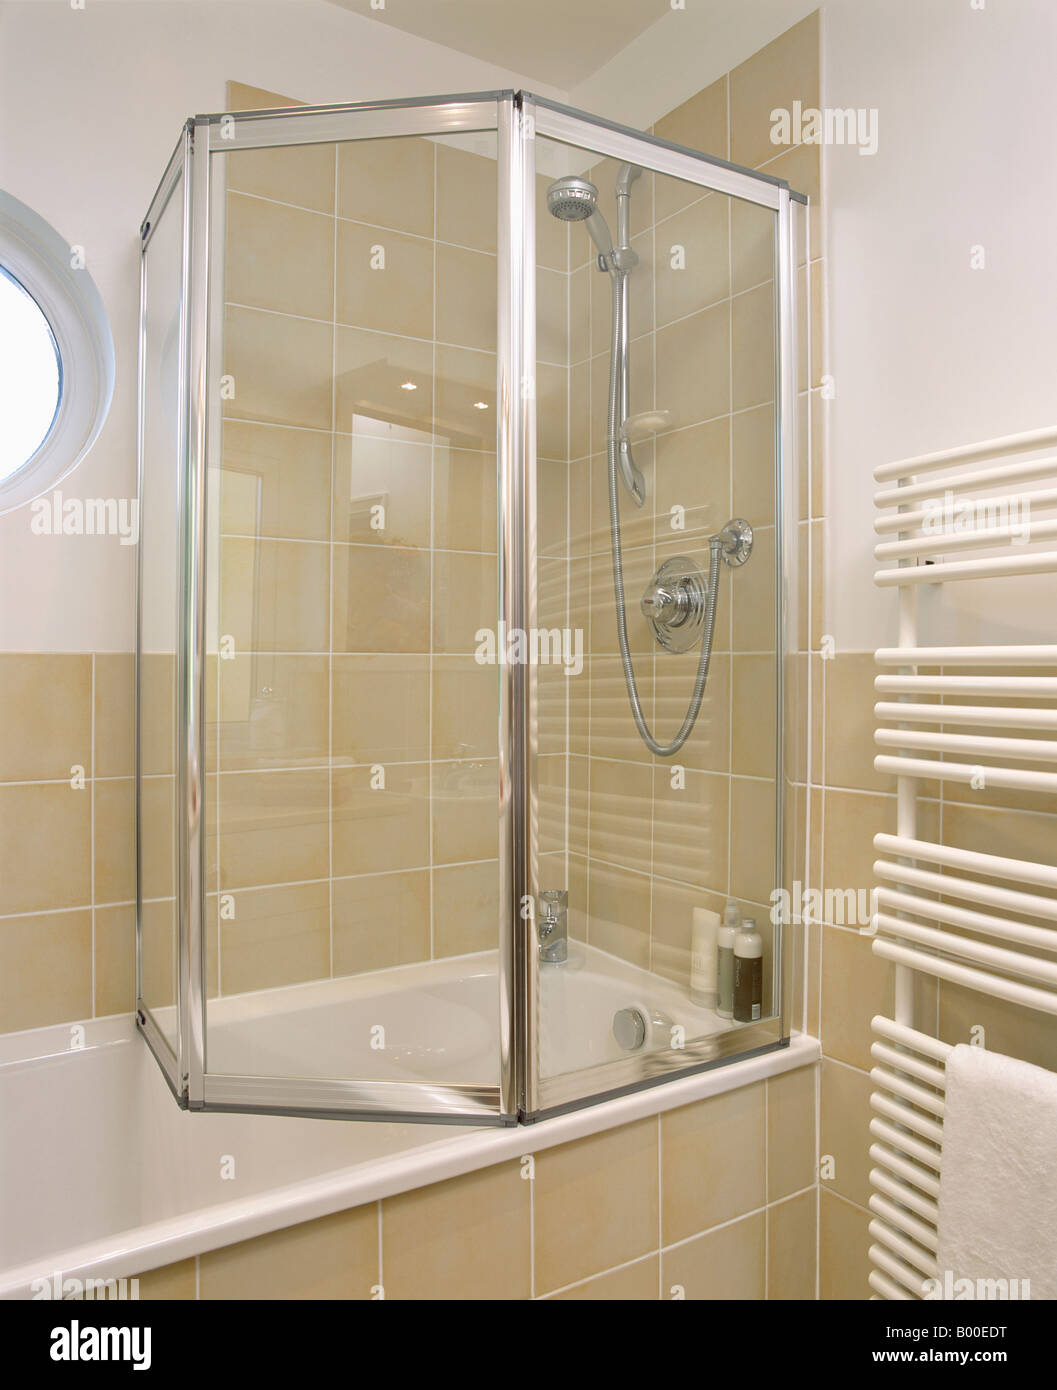 Folding glass shower doors on bath in modern bathroom with neutral stock photo royalty free Glass bathroom doors interior